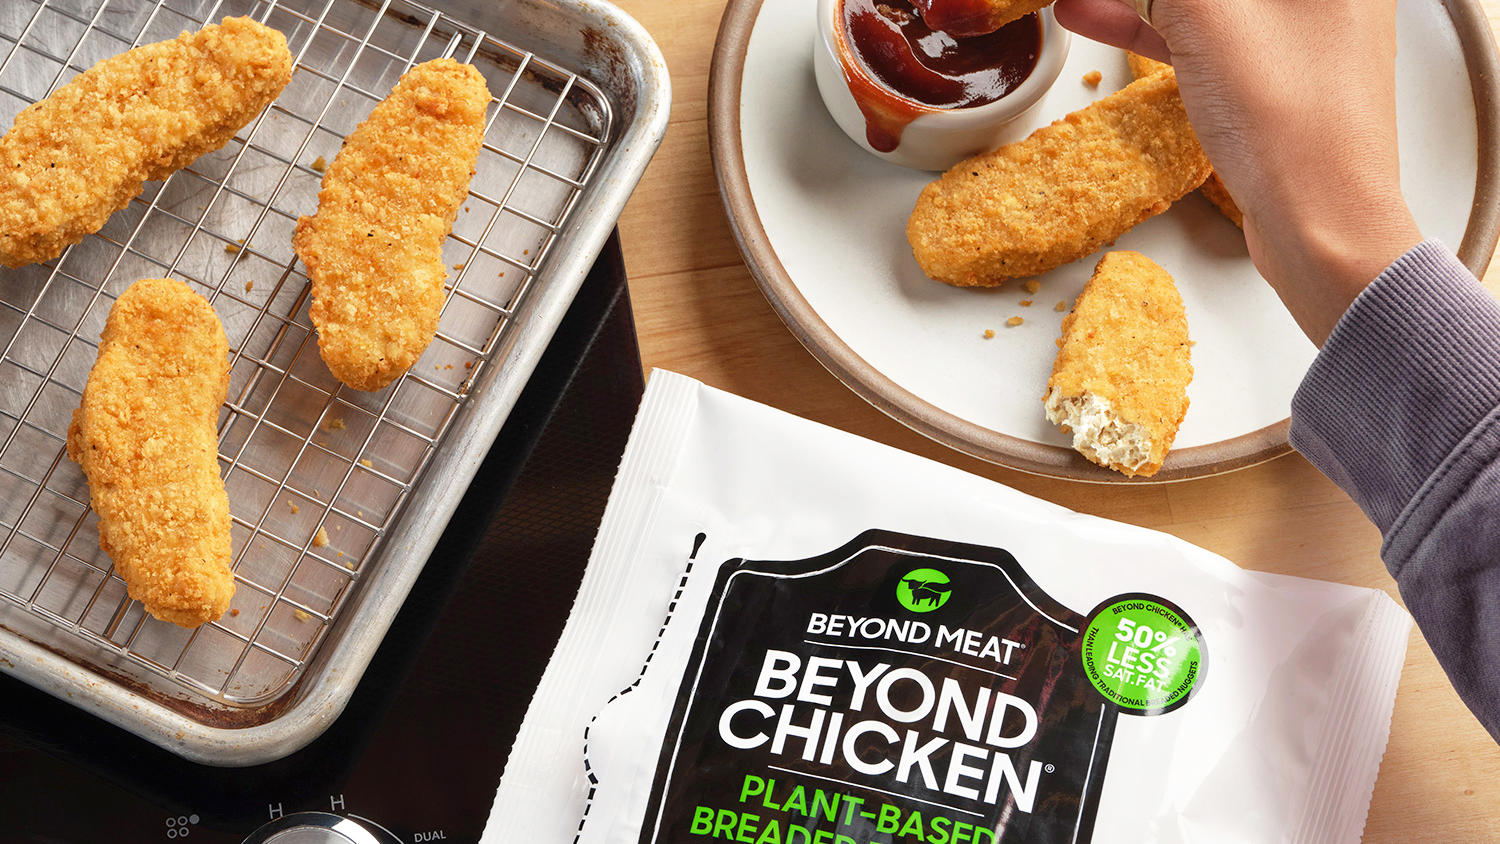 Beyond Meat's vegan chicken tenders on a plate and baking sheet